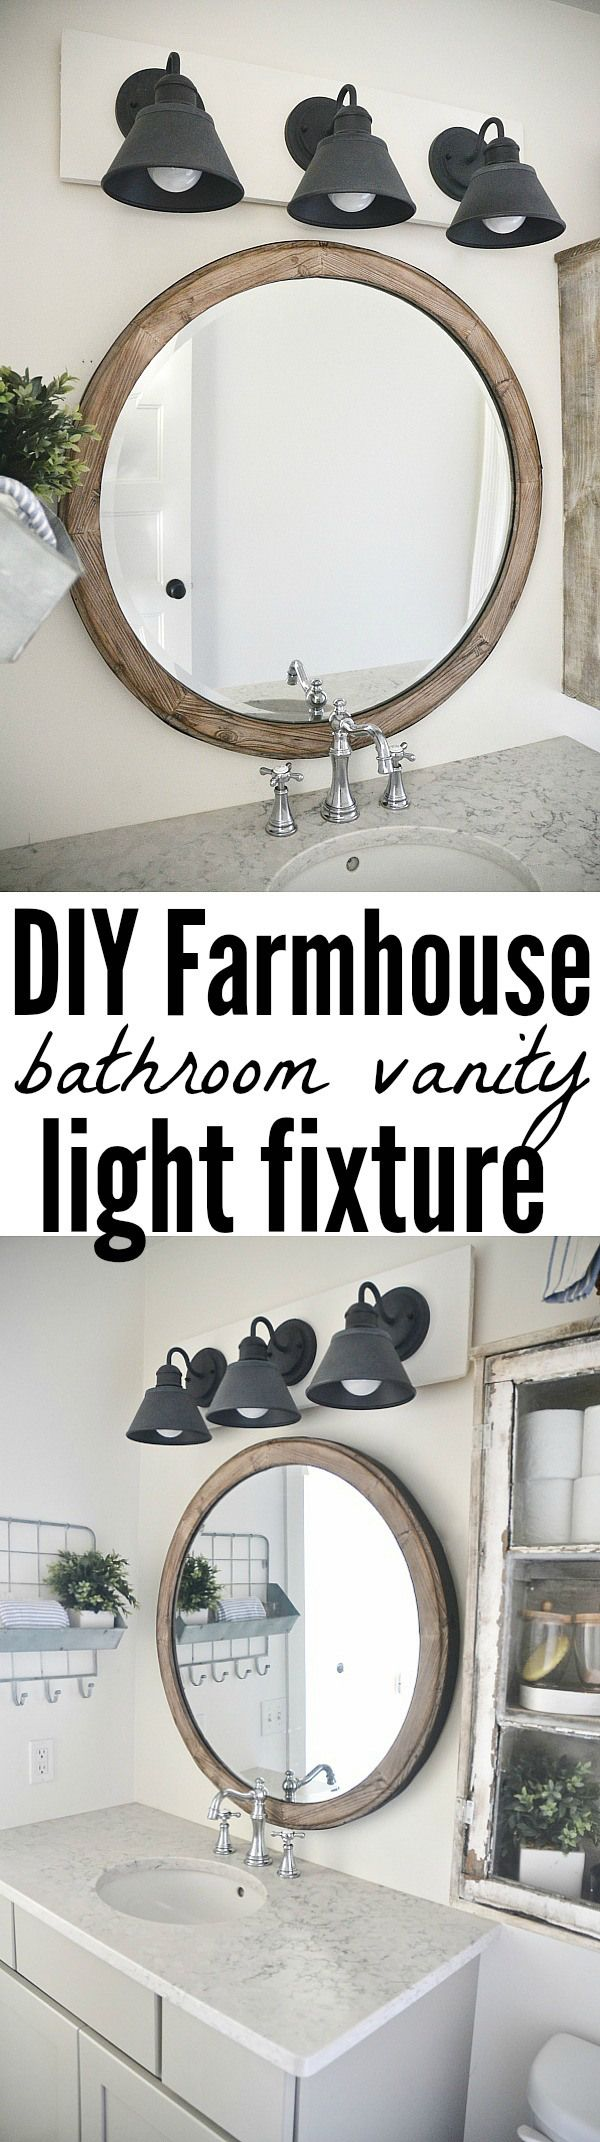 DIY Farmhouse Bathroom Vanity Light Fixture | Blogger Home Projects ...